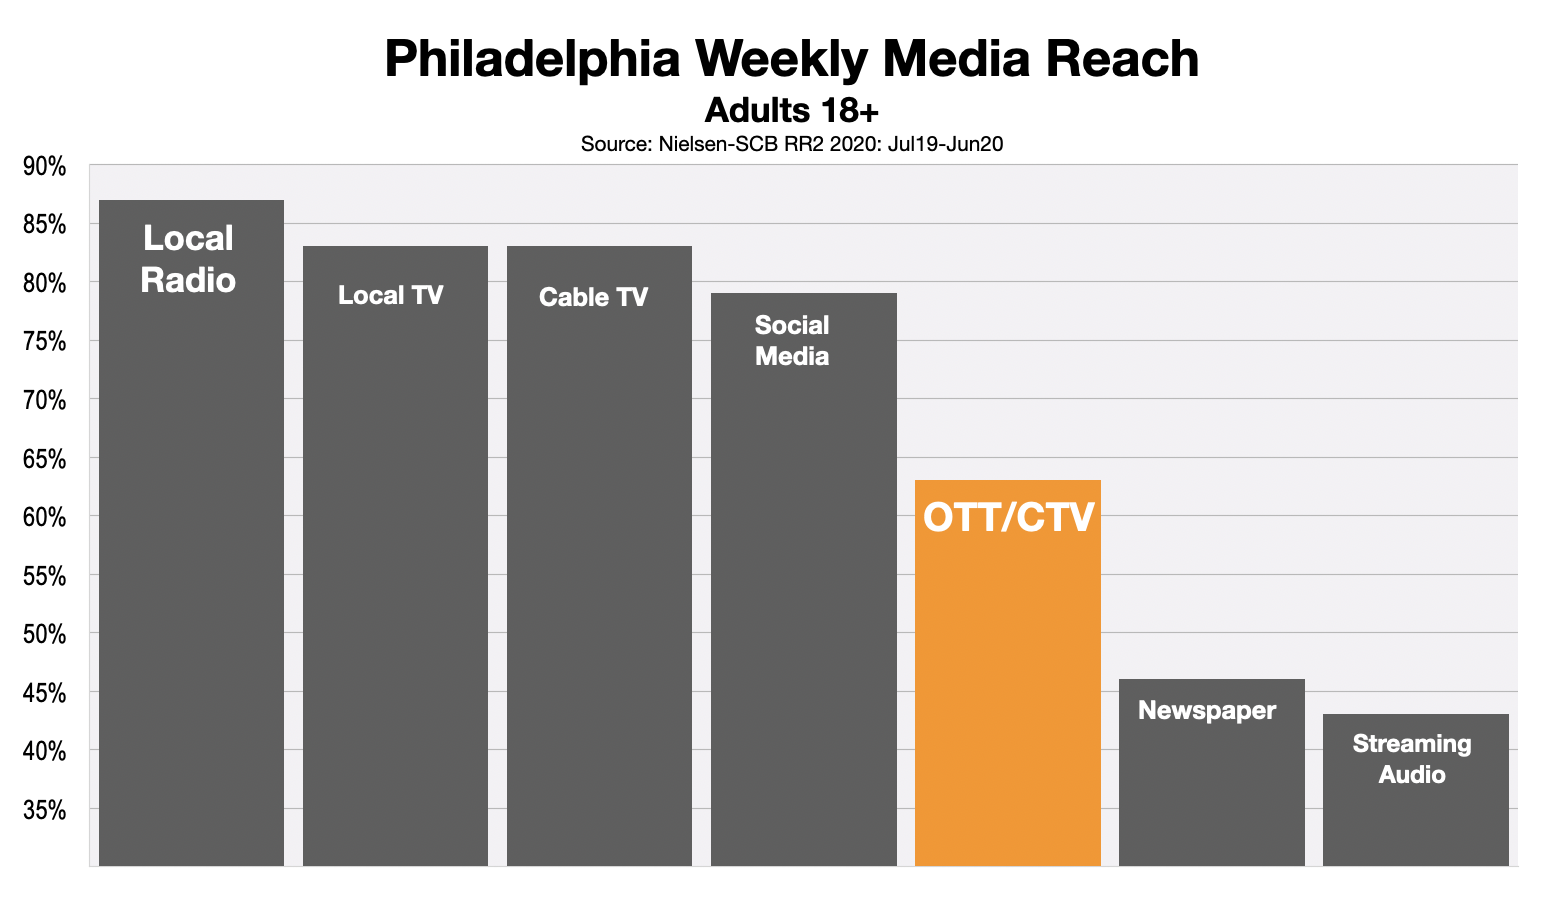 Advertising In Philadelphia: OTT & CTV Reach